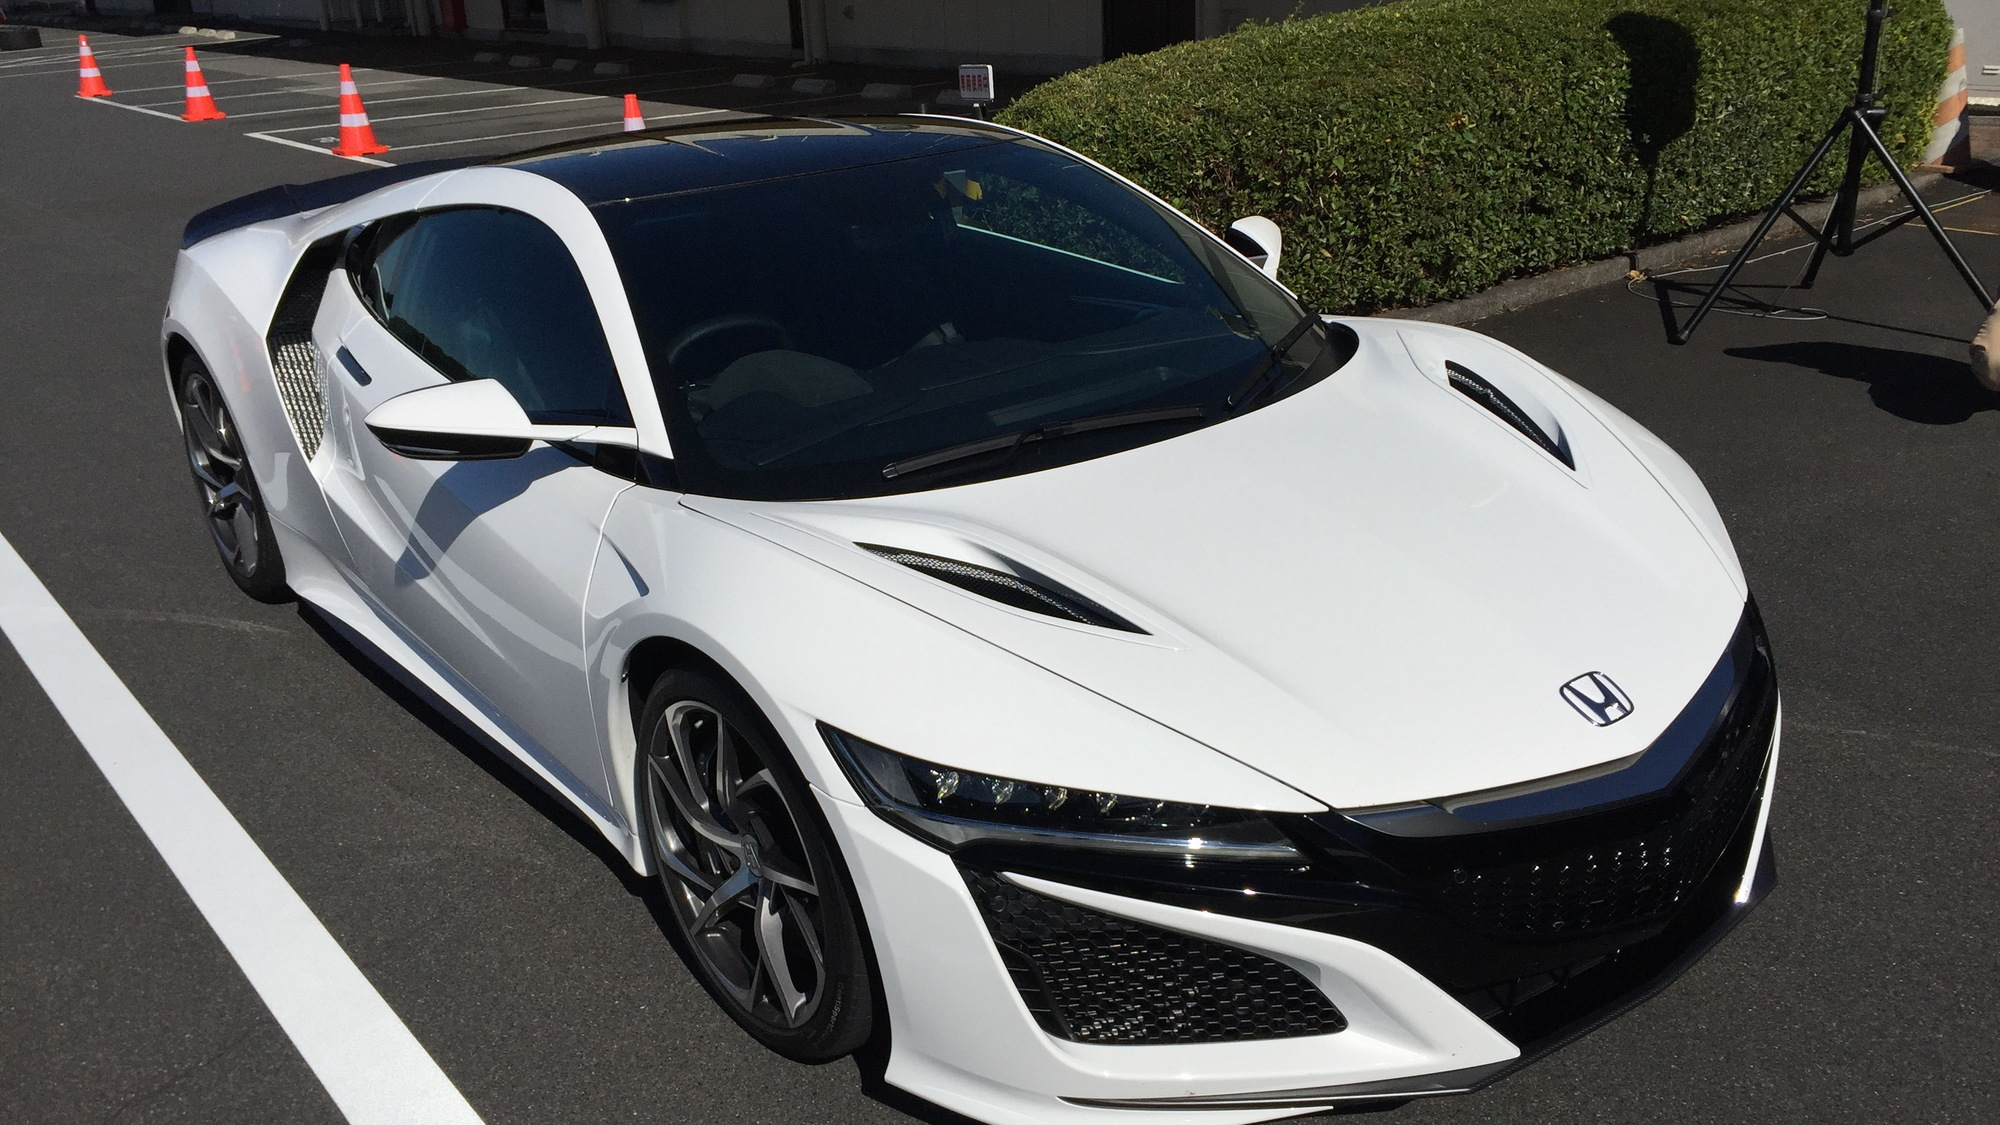 Acura NSX, Honda R&D Center, Oct. 2015